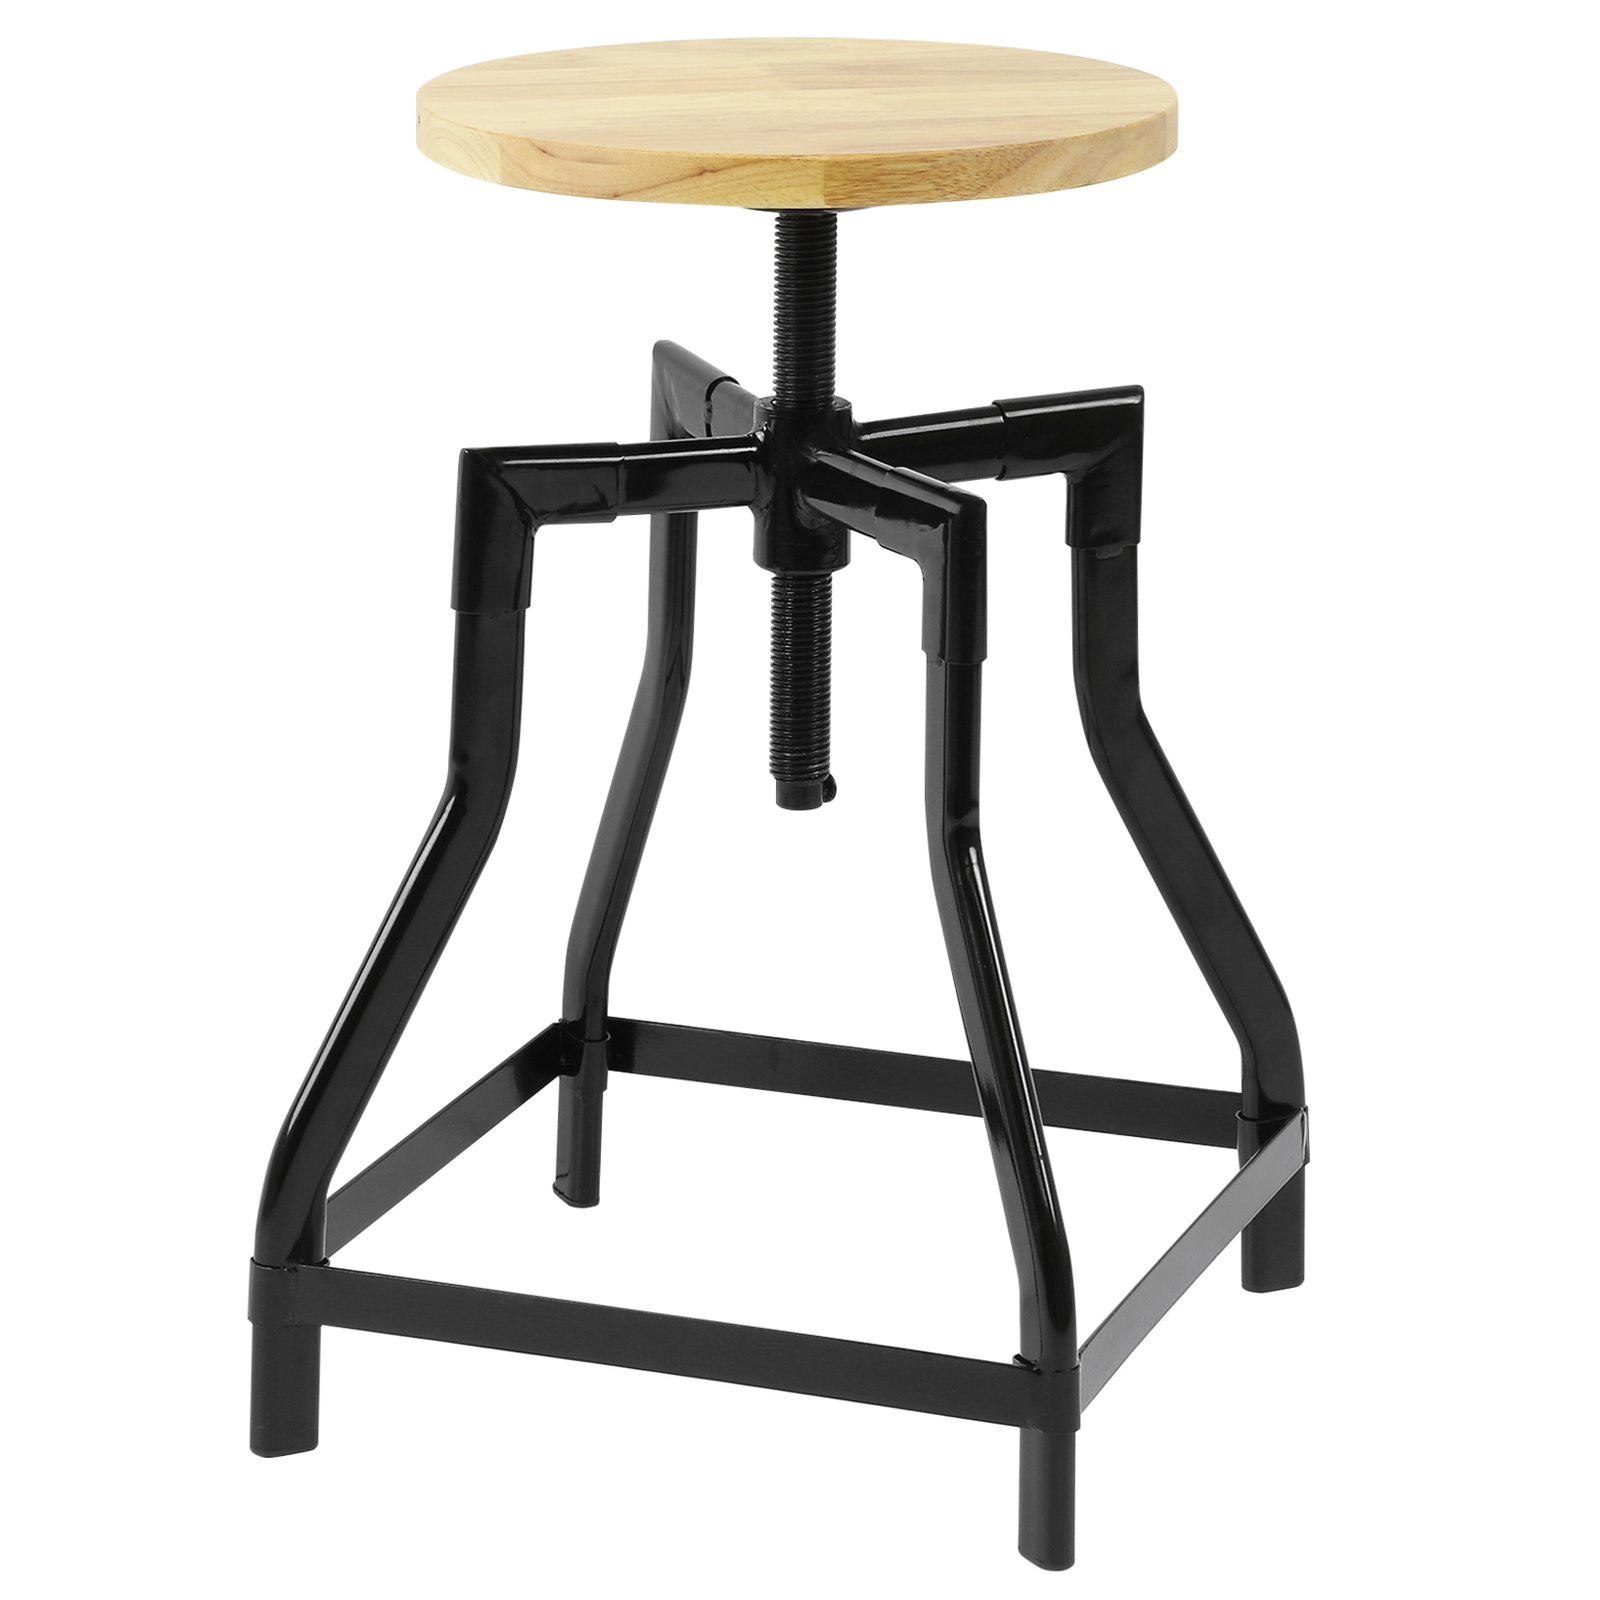 HARTLEYS LOW RETRO SWIVEL SCREW BAR TABLE STOOL WITH  : STL026E from www.ebay.co.uk size 1600 x 1600 jpeg 467kB